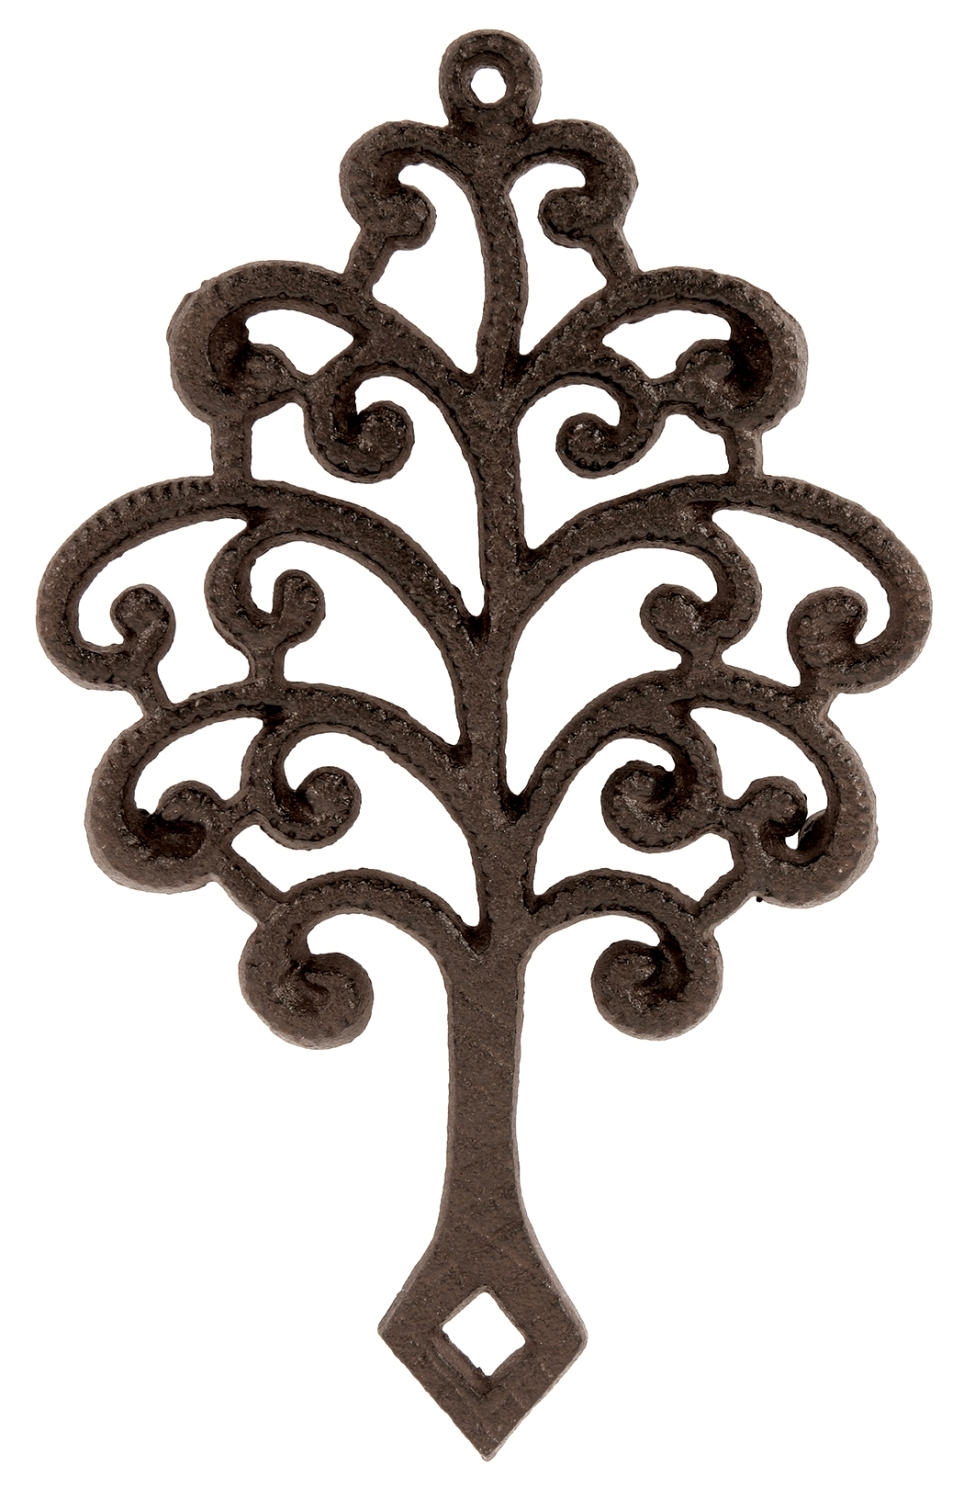 Tree Of Life Shaped Hot Plate Trivet Kitchen Decor Cast Iron 6 Inches